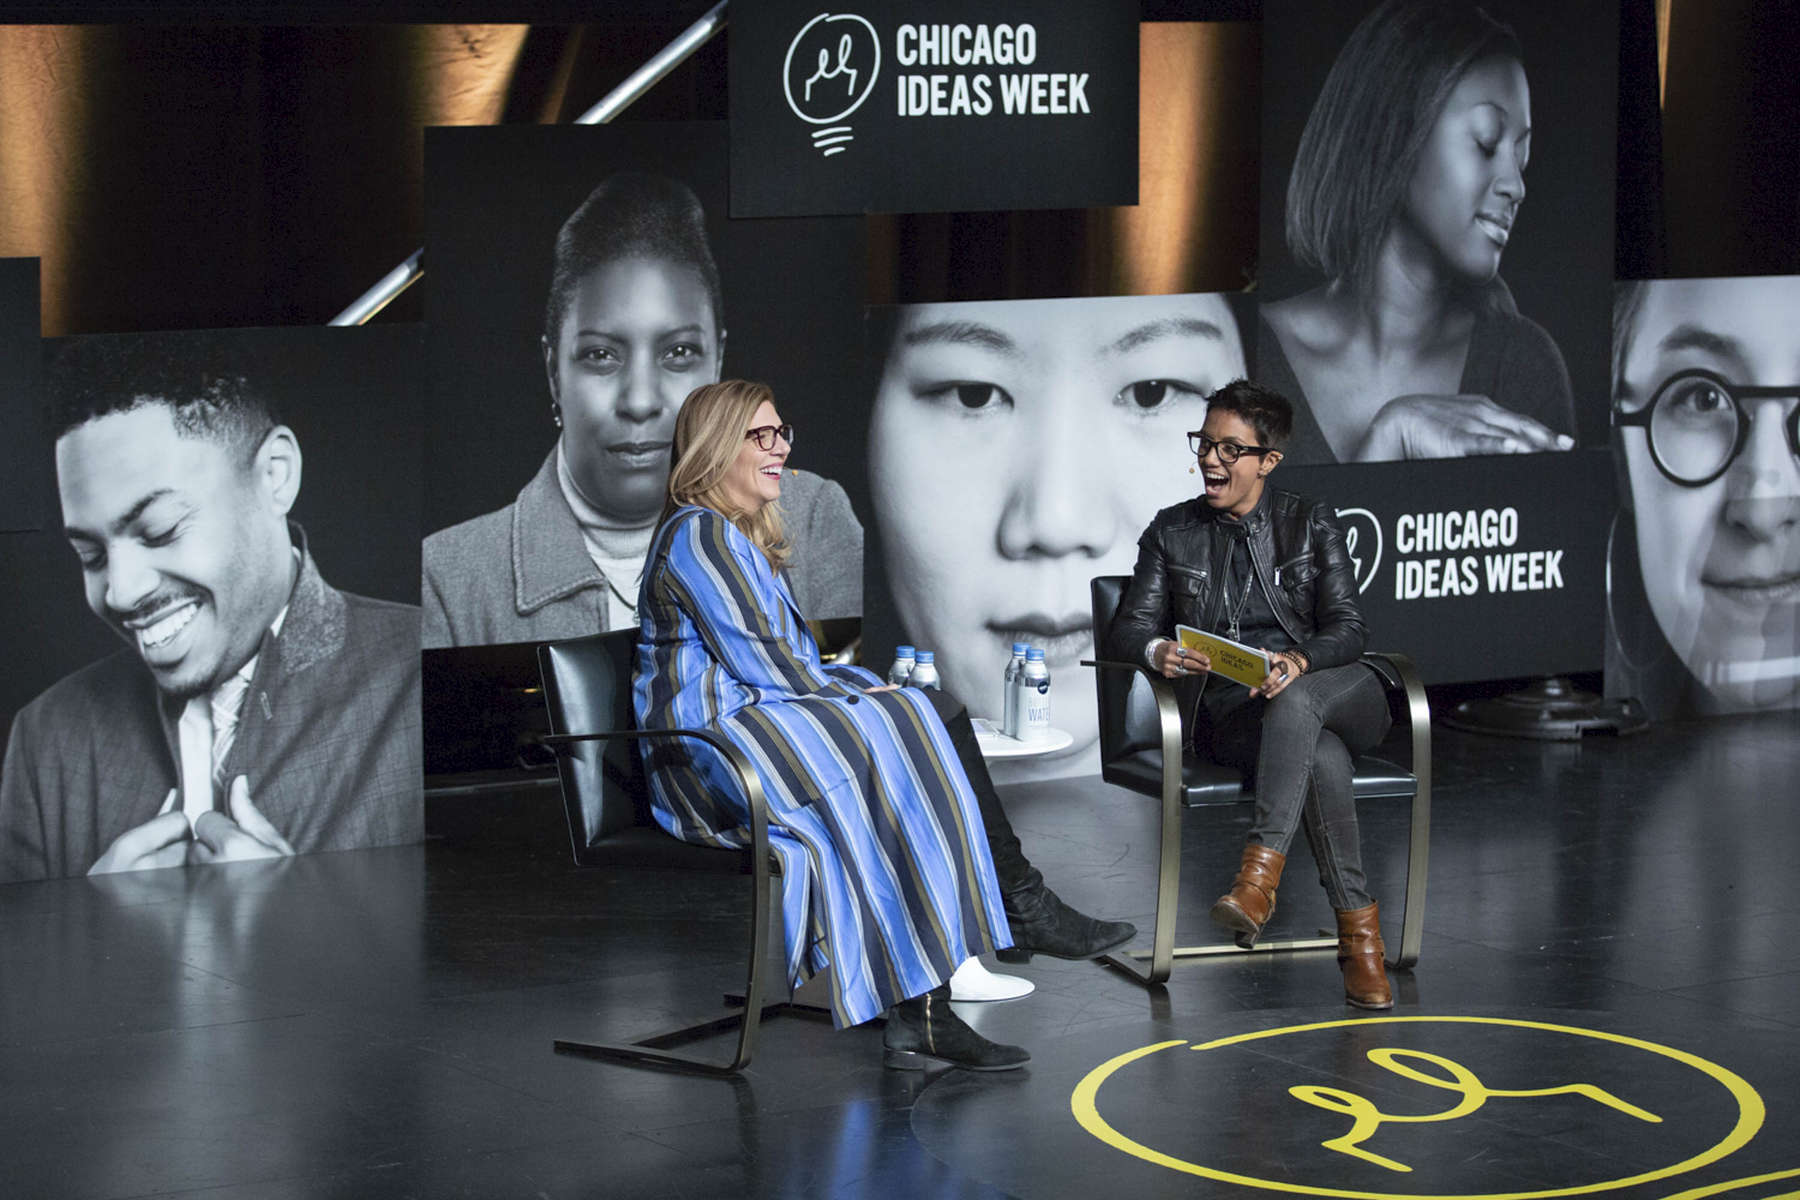 """CHICAGO, IL - OCTOBER 17: Fawzia Mirza,Actor & Writer (right) interviews Krista Vernoff, Writer and Executive Producer (left)  during """"Radical Creators: The Cultural Leaders Defining the Zeitgeist"""" at the Edlis Neeson Theater. (Photo by Beth Rooney/Chicago Ideas Week)"""